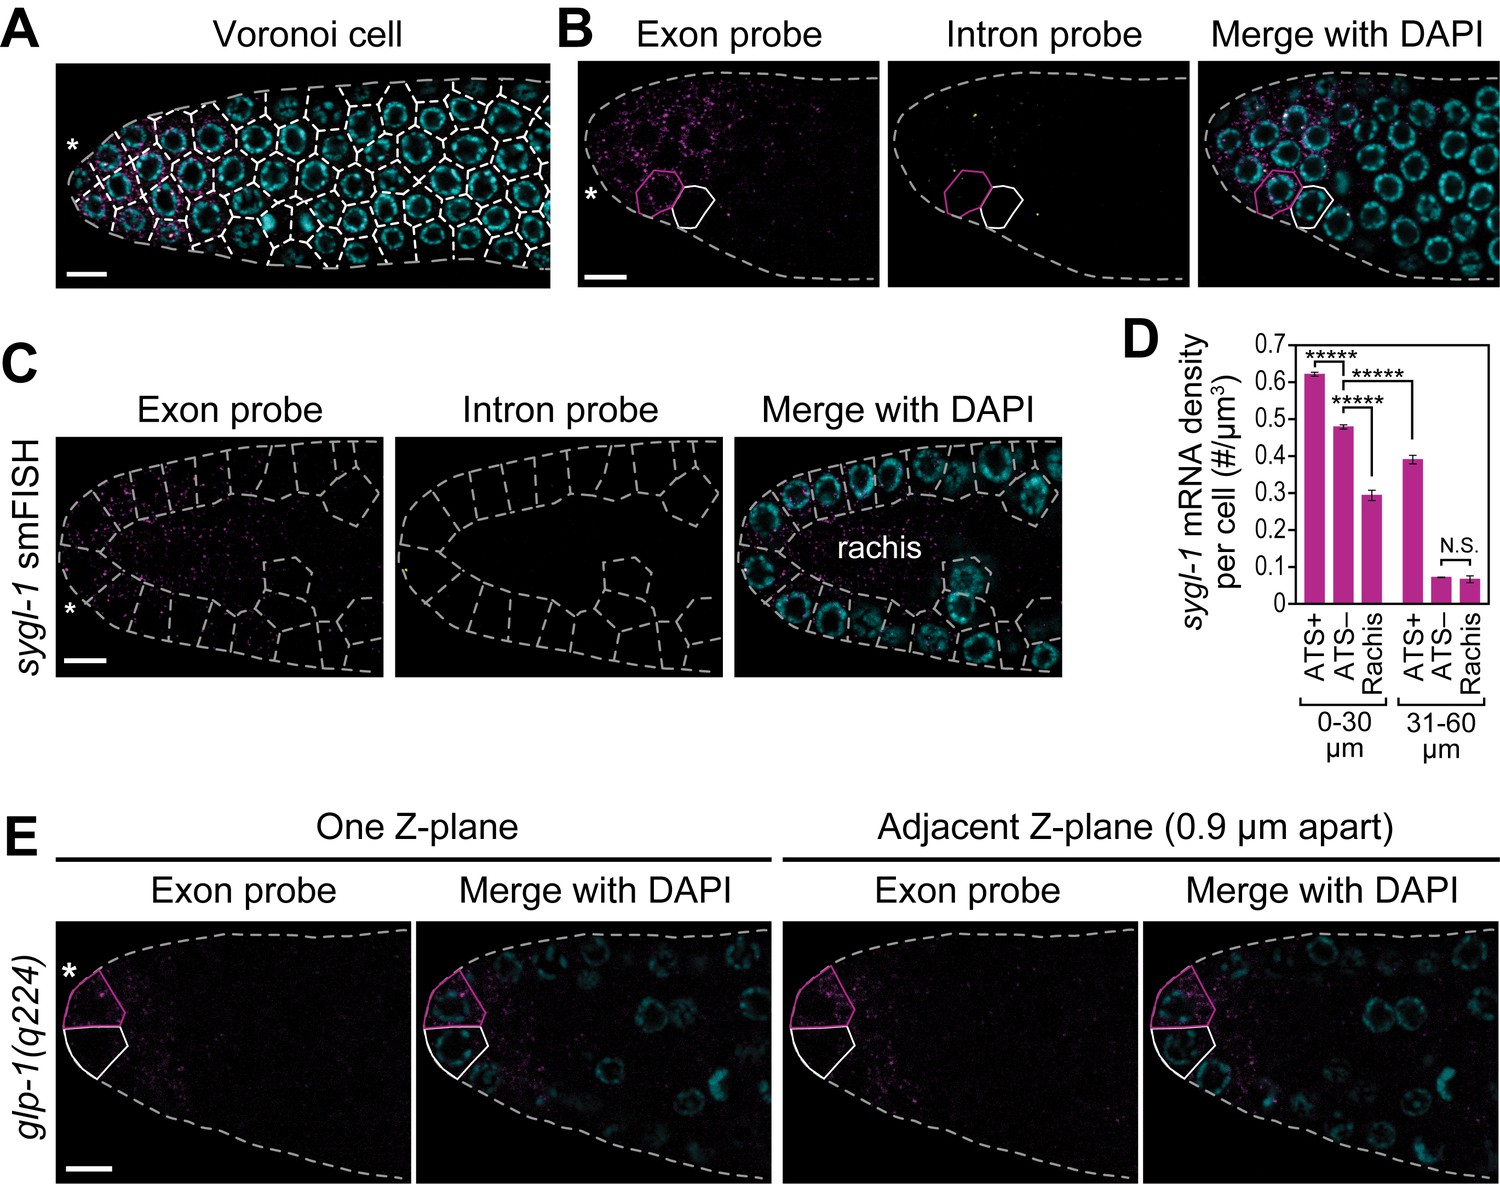 C Elegans Glp 1 Notch Activates Transcription In A Probability 598 X 441 48 Kb Jpeg Heart Rate Monitor Circuit Diagram Source Cells With Abundant Sygl Mrna Can Reside Next To Little